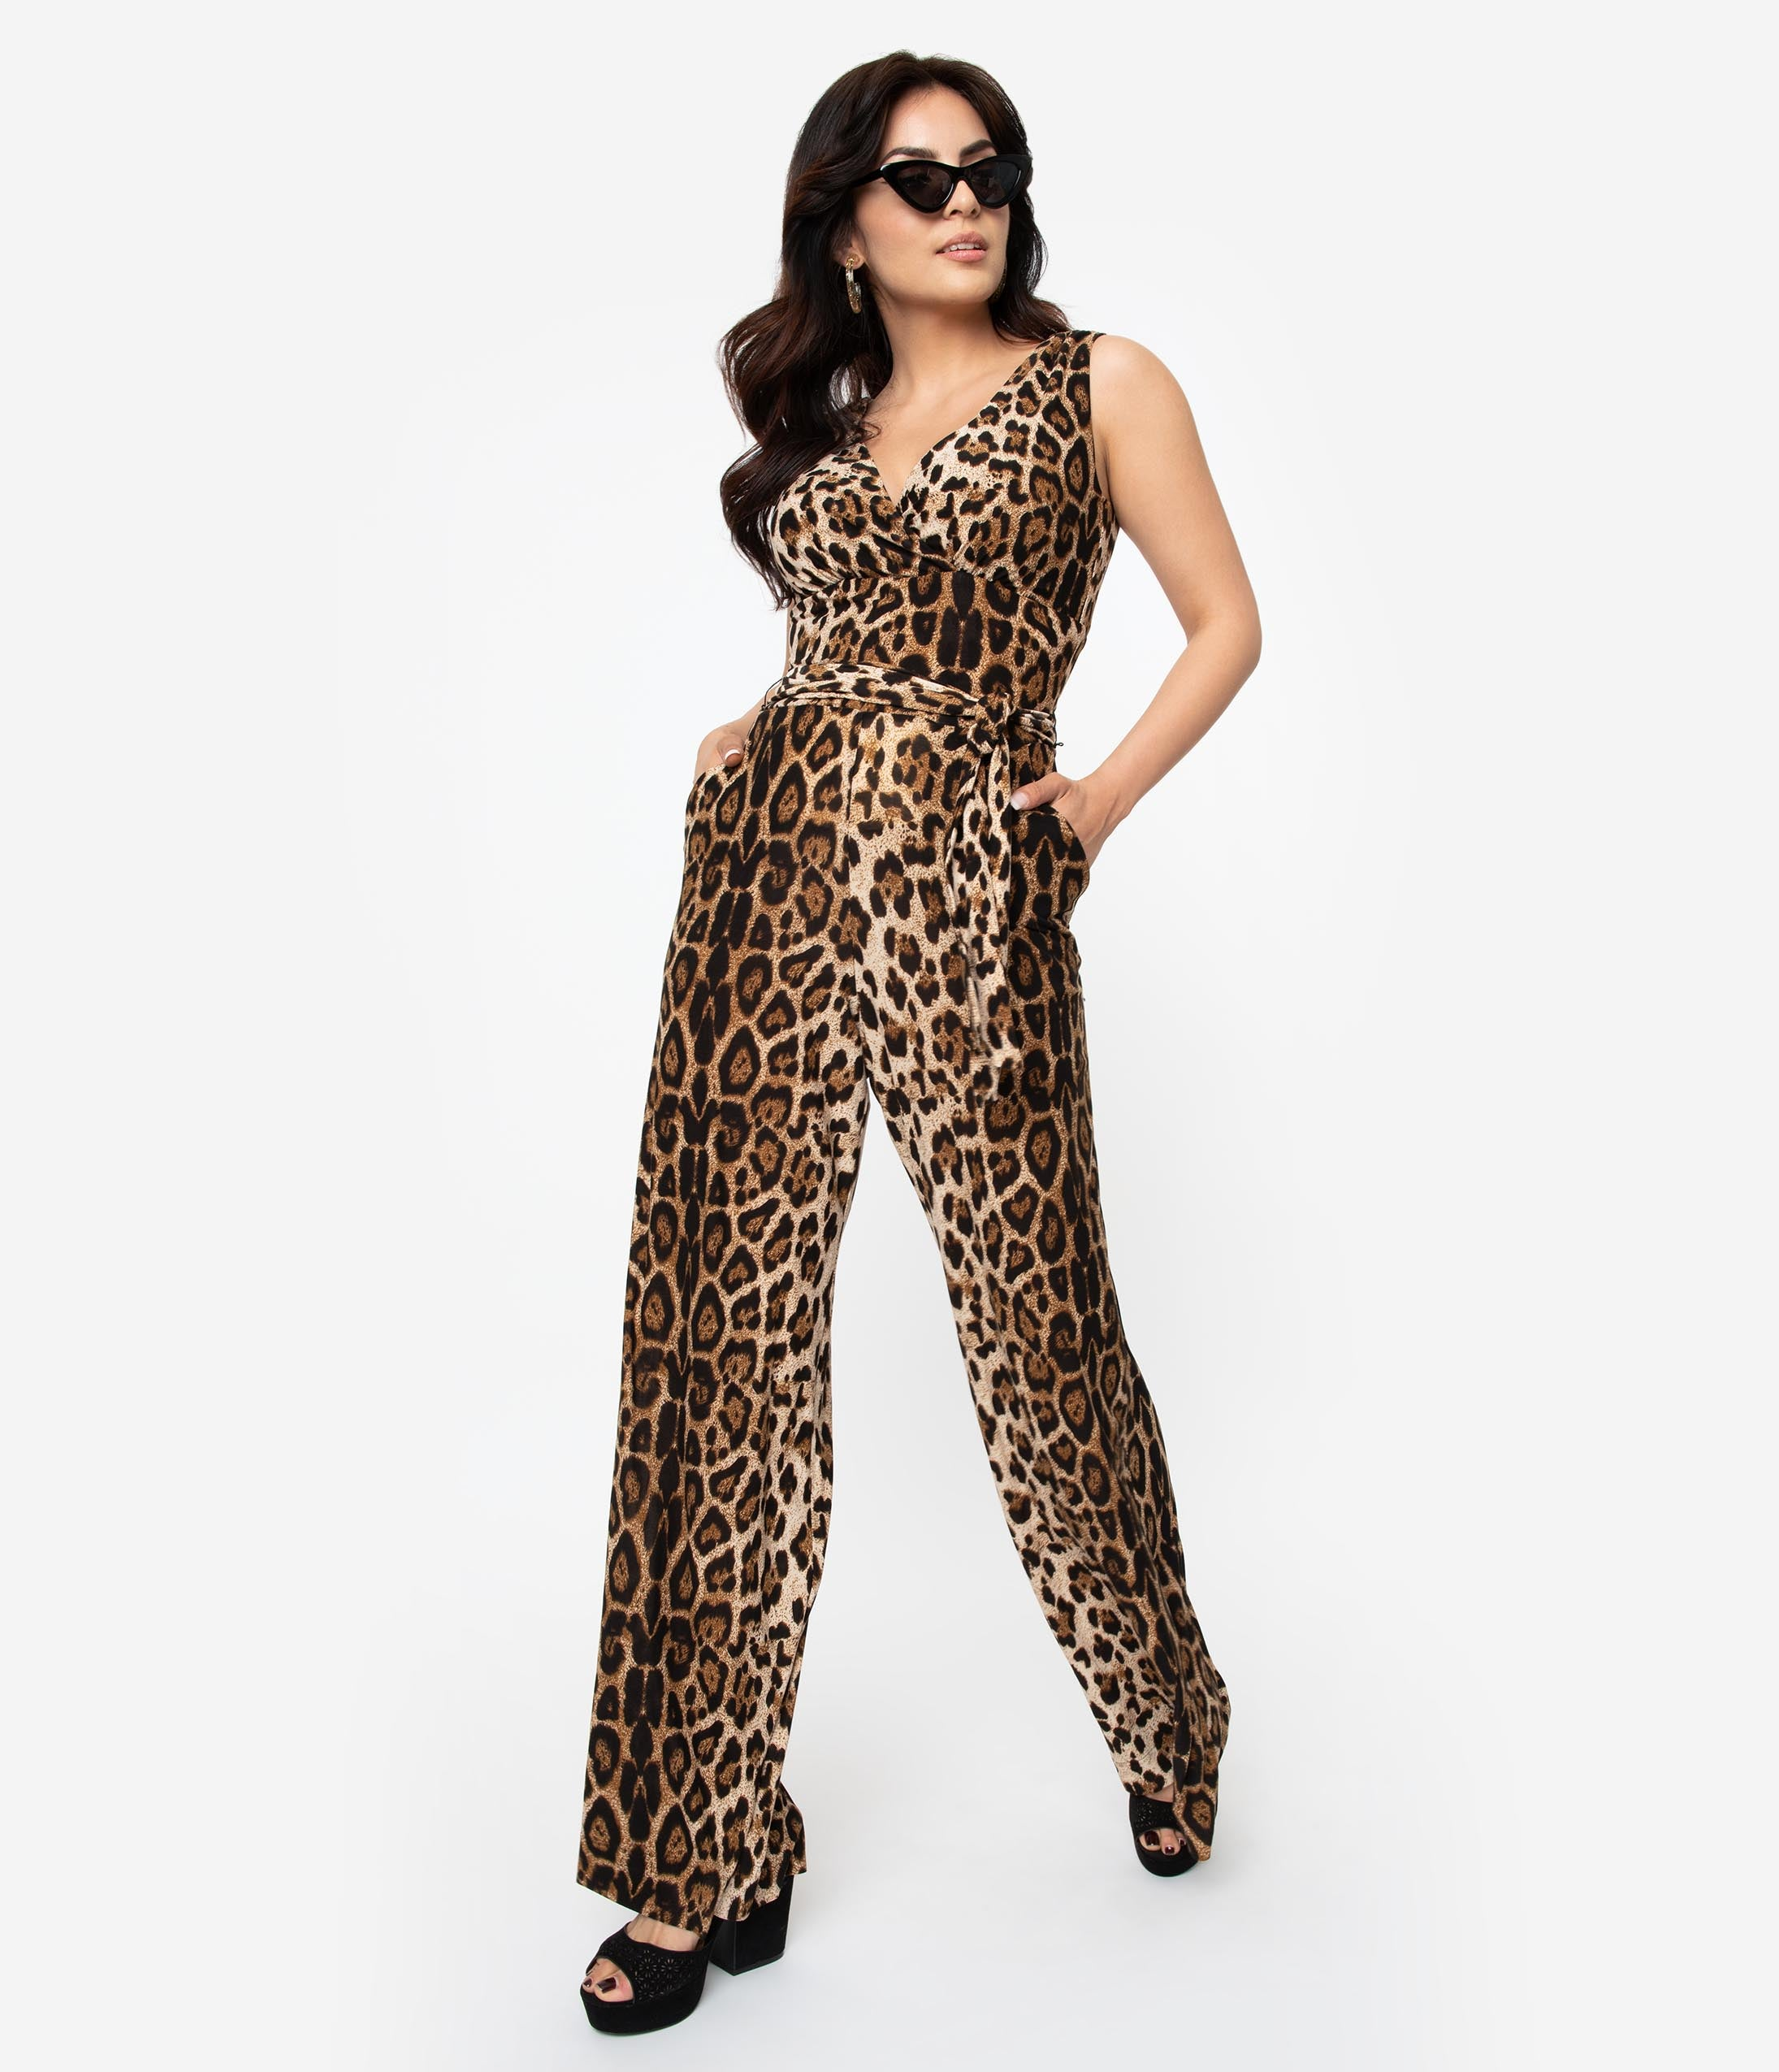 1950 Style Clothing- A Shopping Guide Unique Vintage Leopard Print Sleeveless Knit Montgomery Jumpsuit $88.00 AT vintagedancer.com